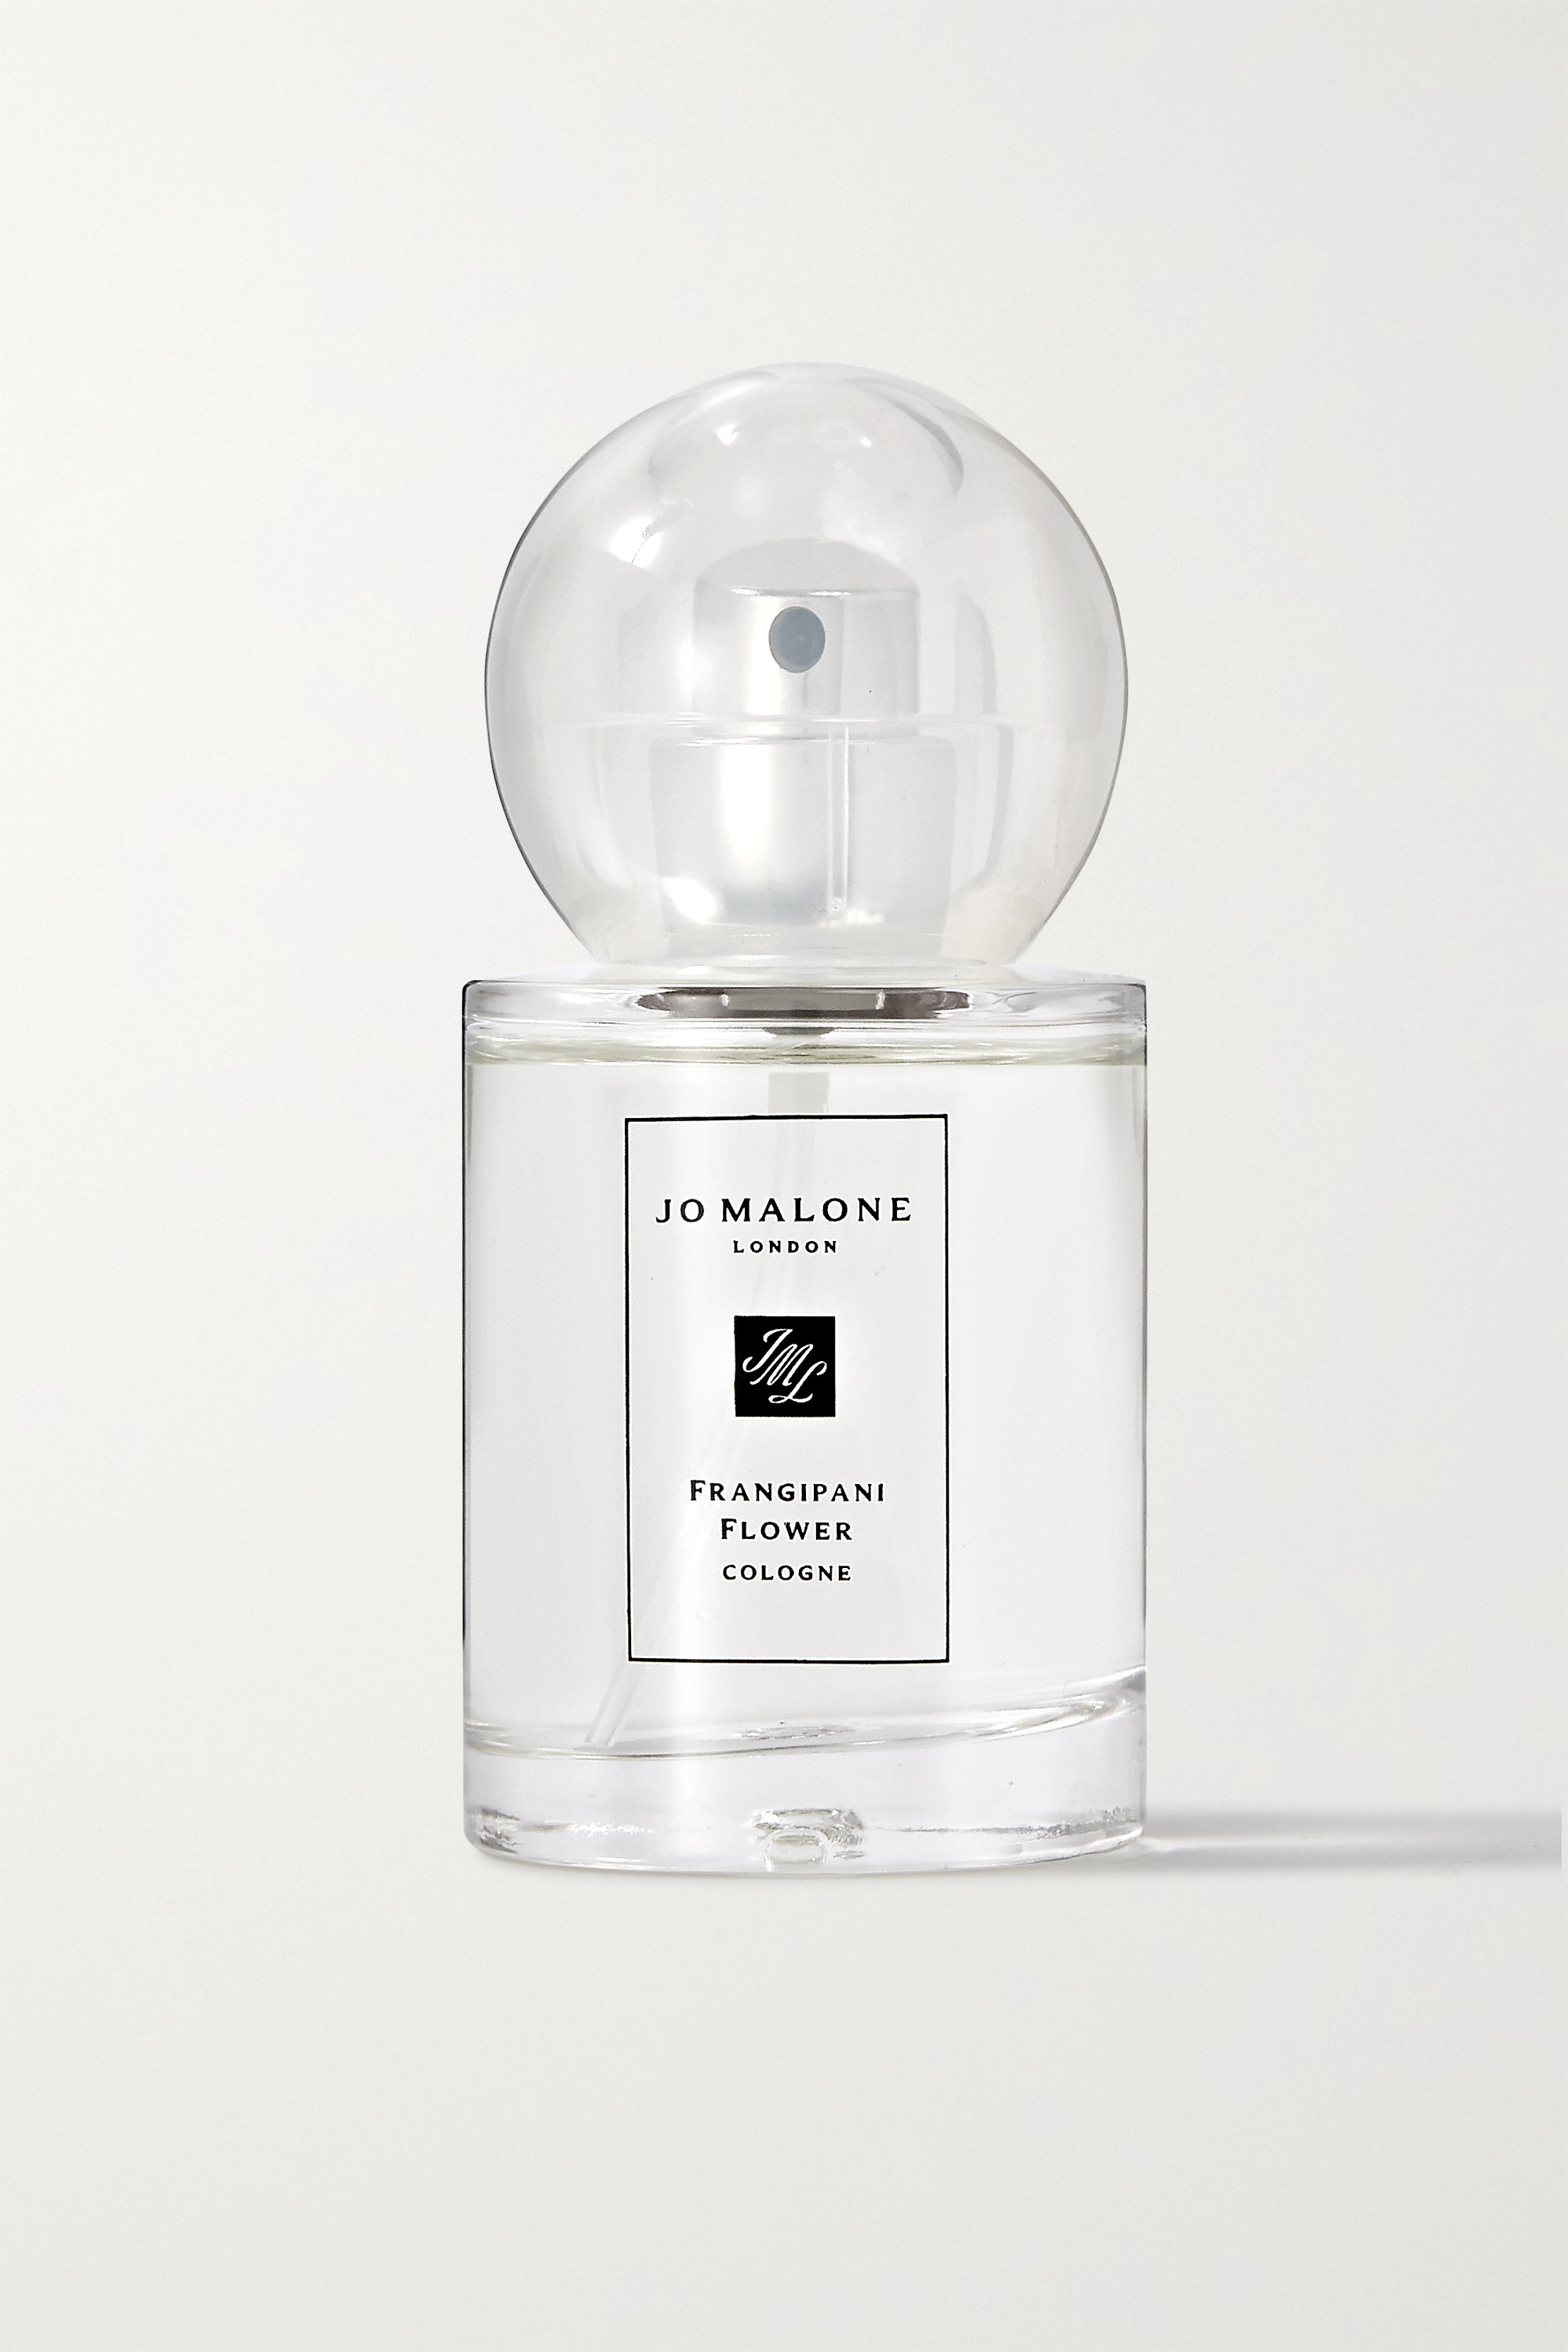 JO MALONE LONDON Cologne - Frangipani Flower, 30ml